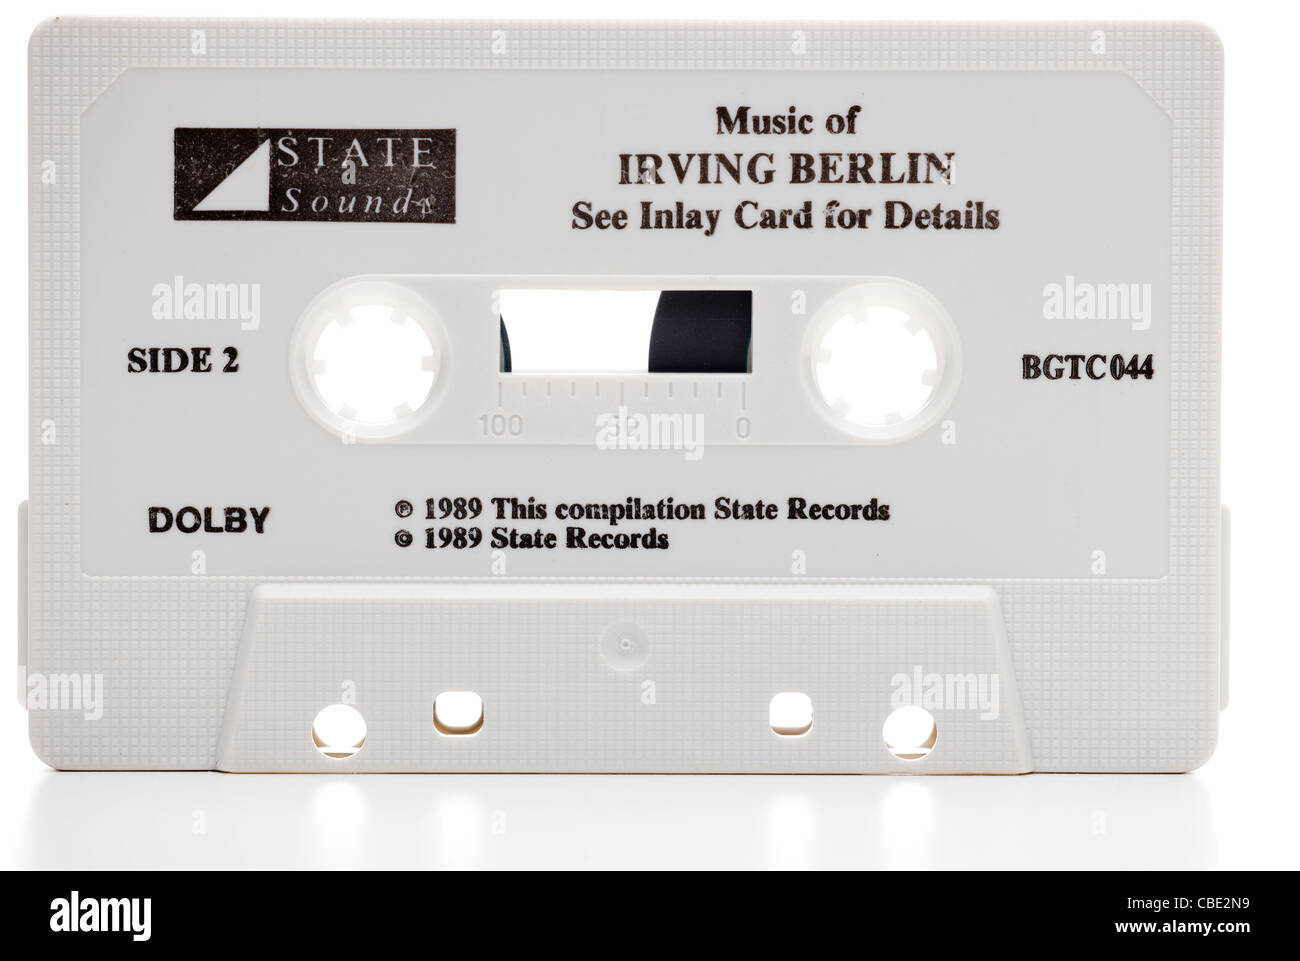 Old cassette music tape from State Sounds displaying the music of Irving Berlin Stock Photo